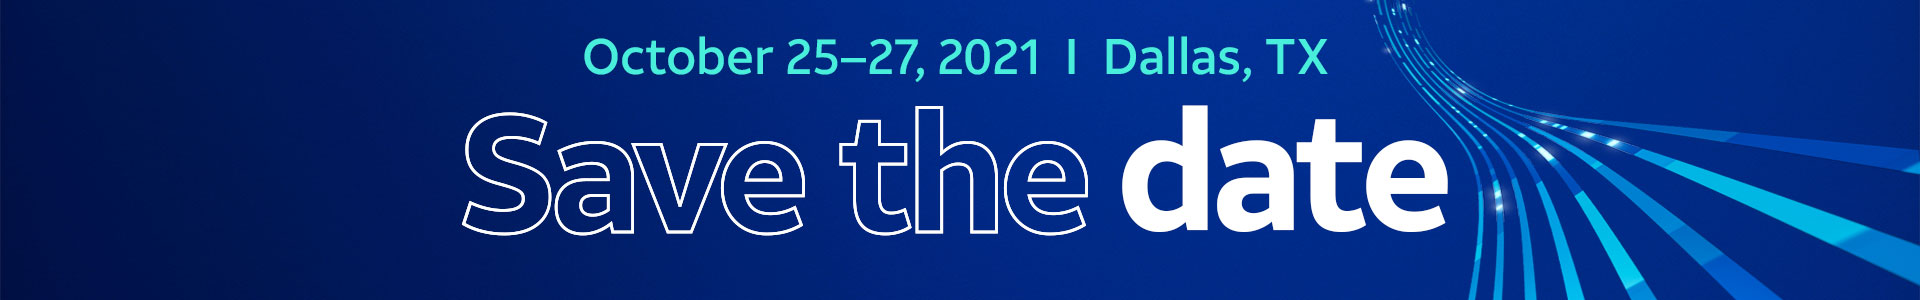 October 25-27, 2021 | Dallas, TX | Save the date